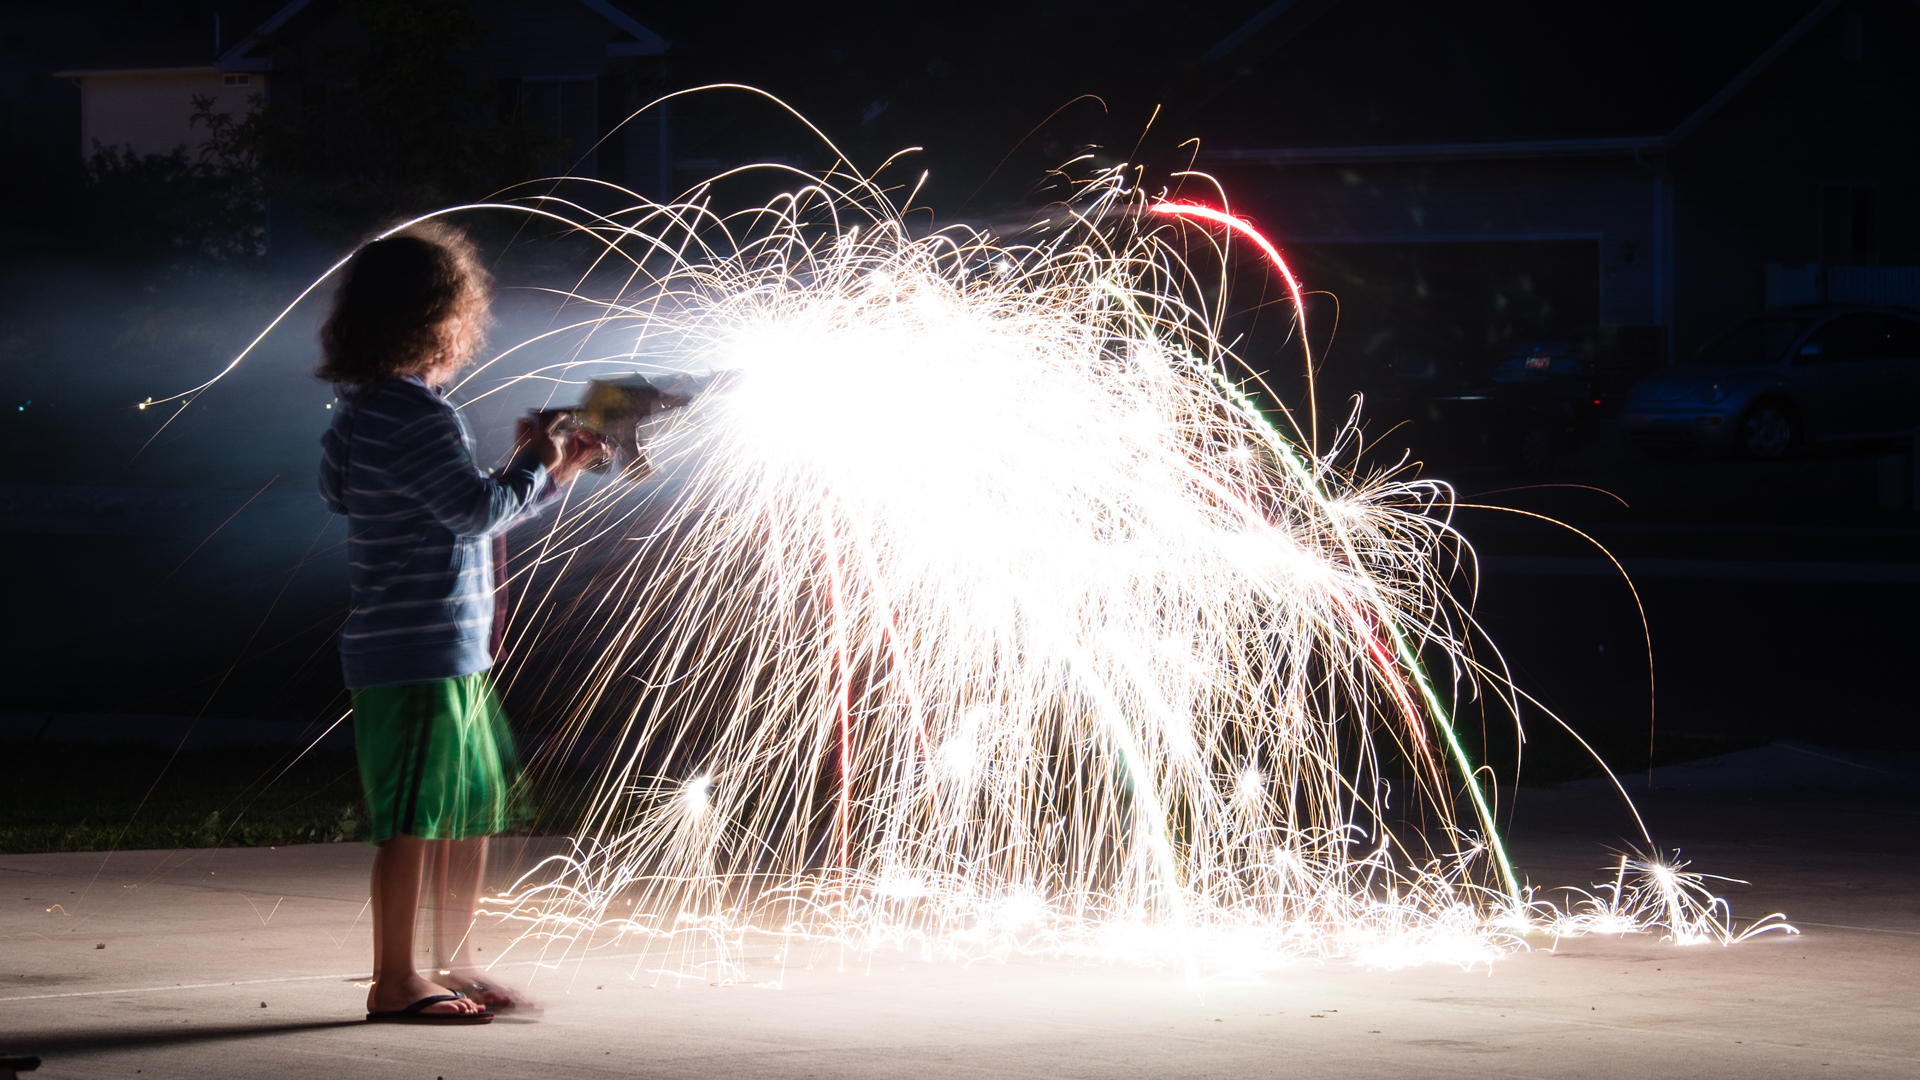 Kids with sparklers is a great way to test exposure before the big fireworks display